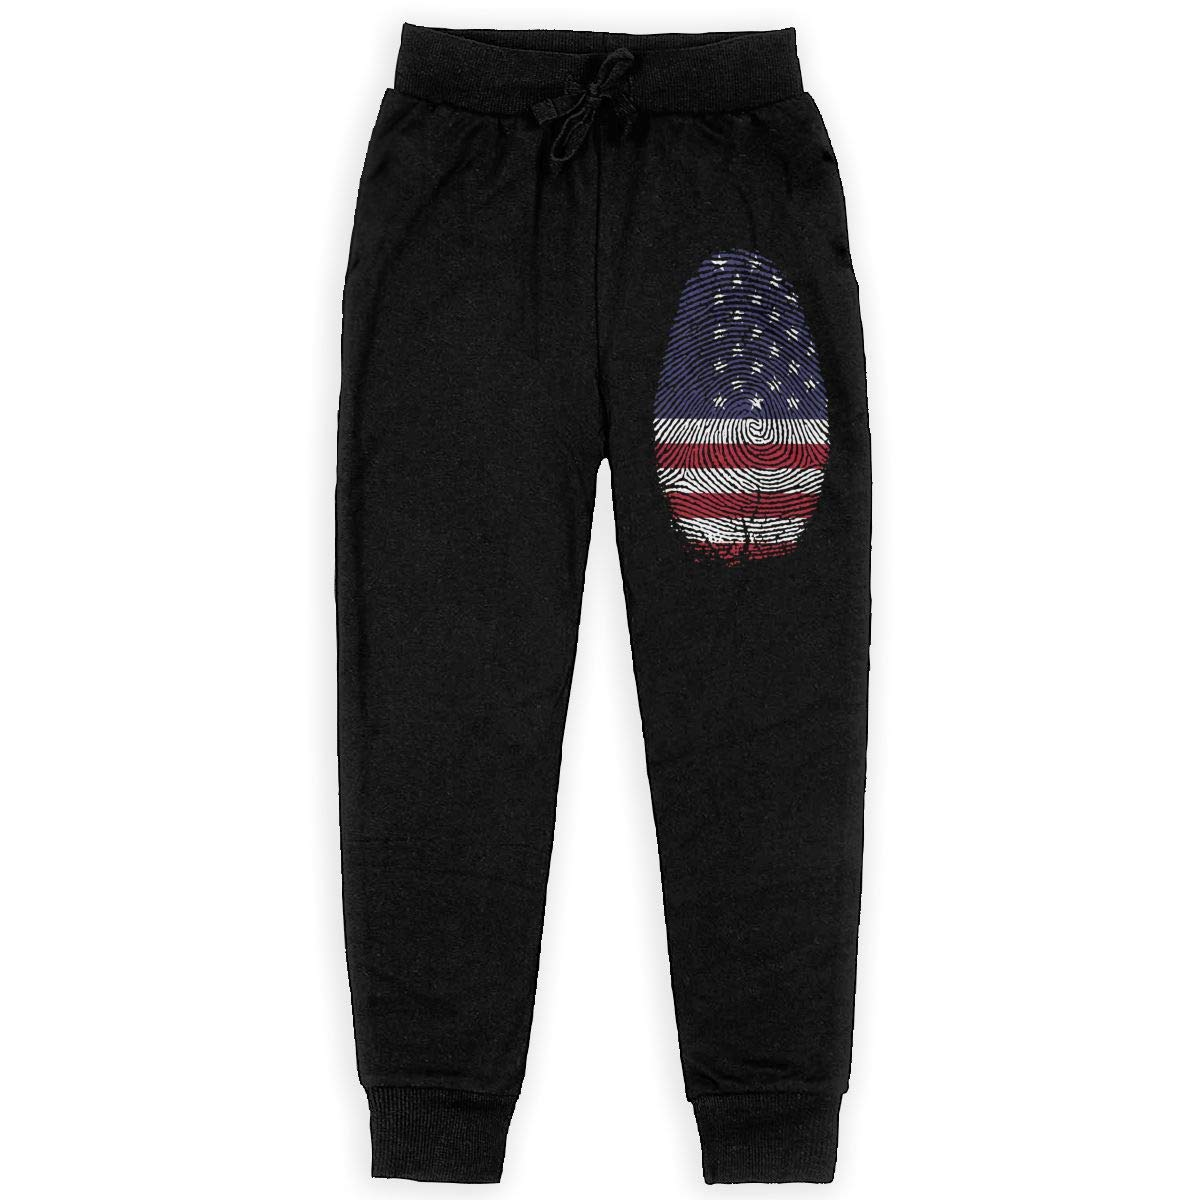 IufnNRJndfu America Boys Athletic Smart Fleece Pant Youth Soft and Cozy Sweatpants